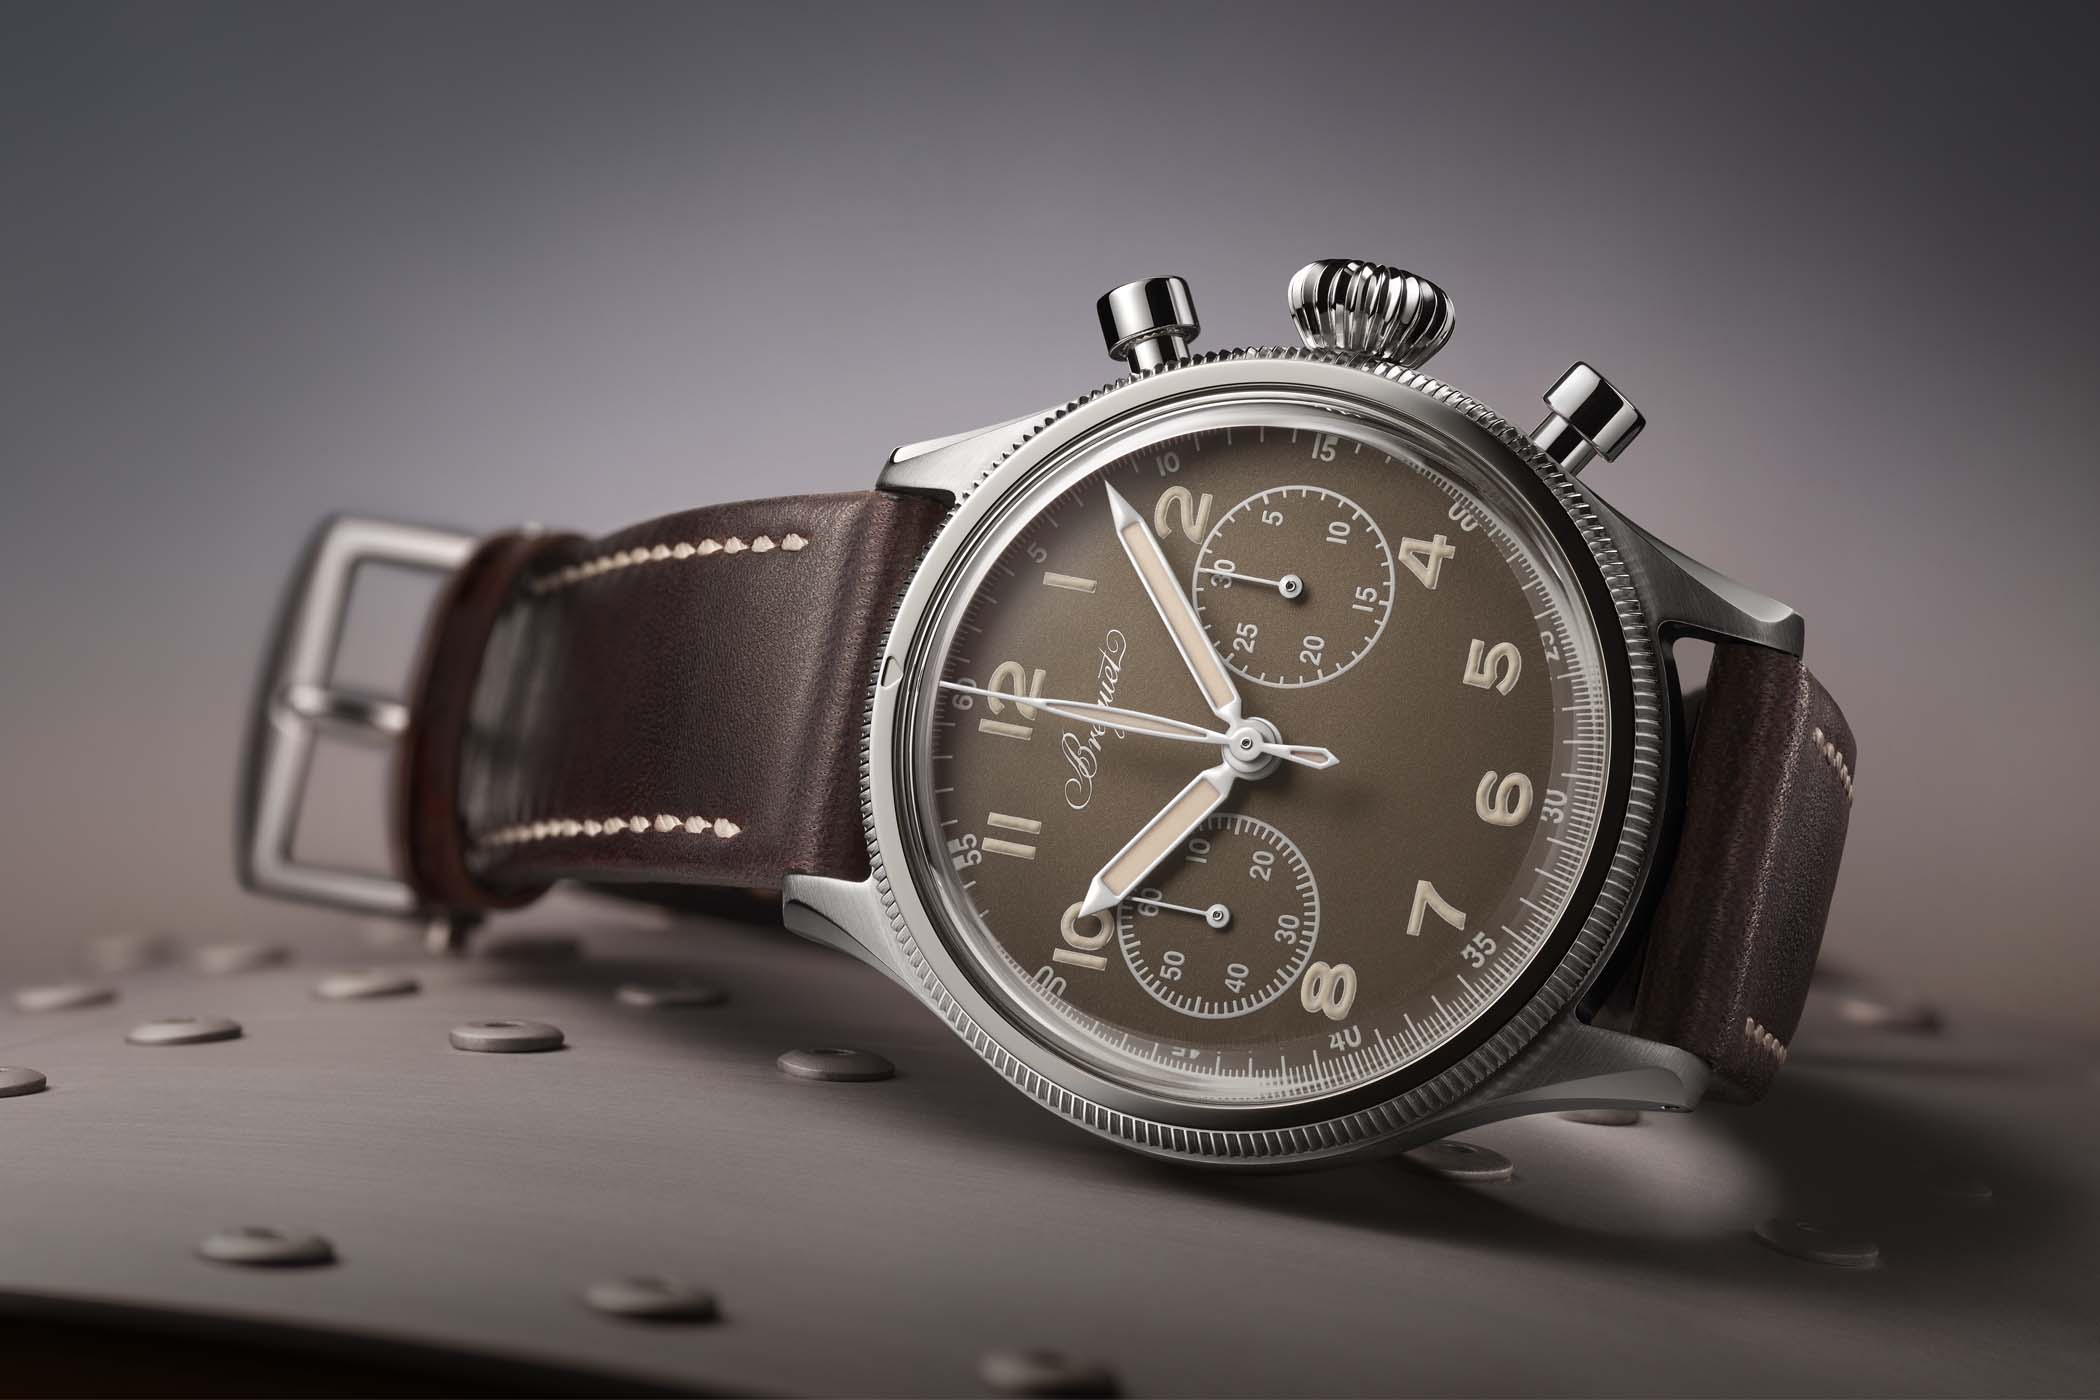 Only Watch 2019 - Breguet Type 20 Revival Unique Piece 2055ST